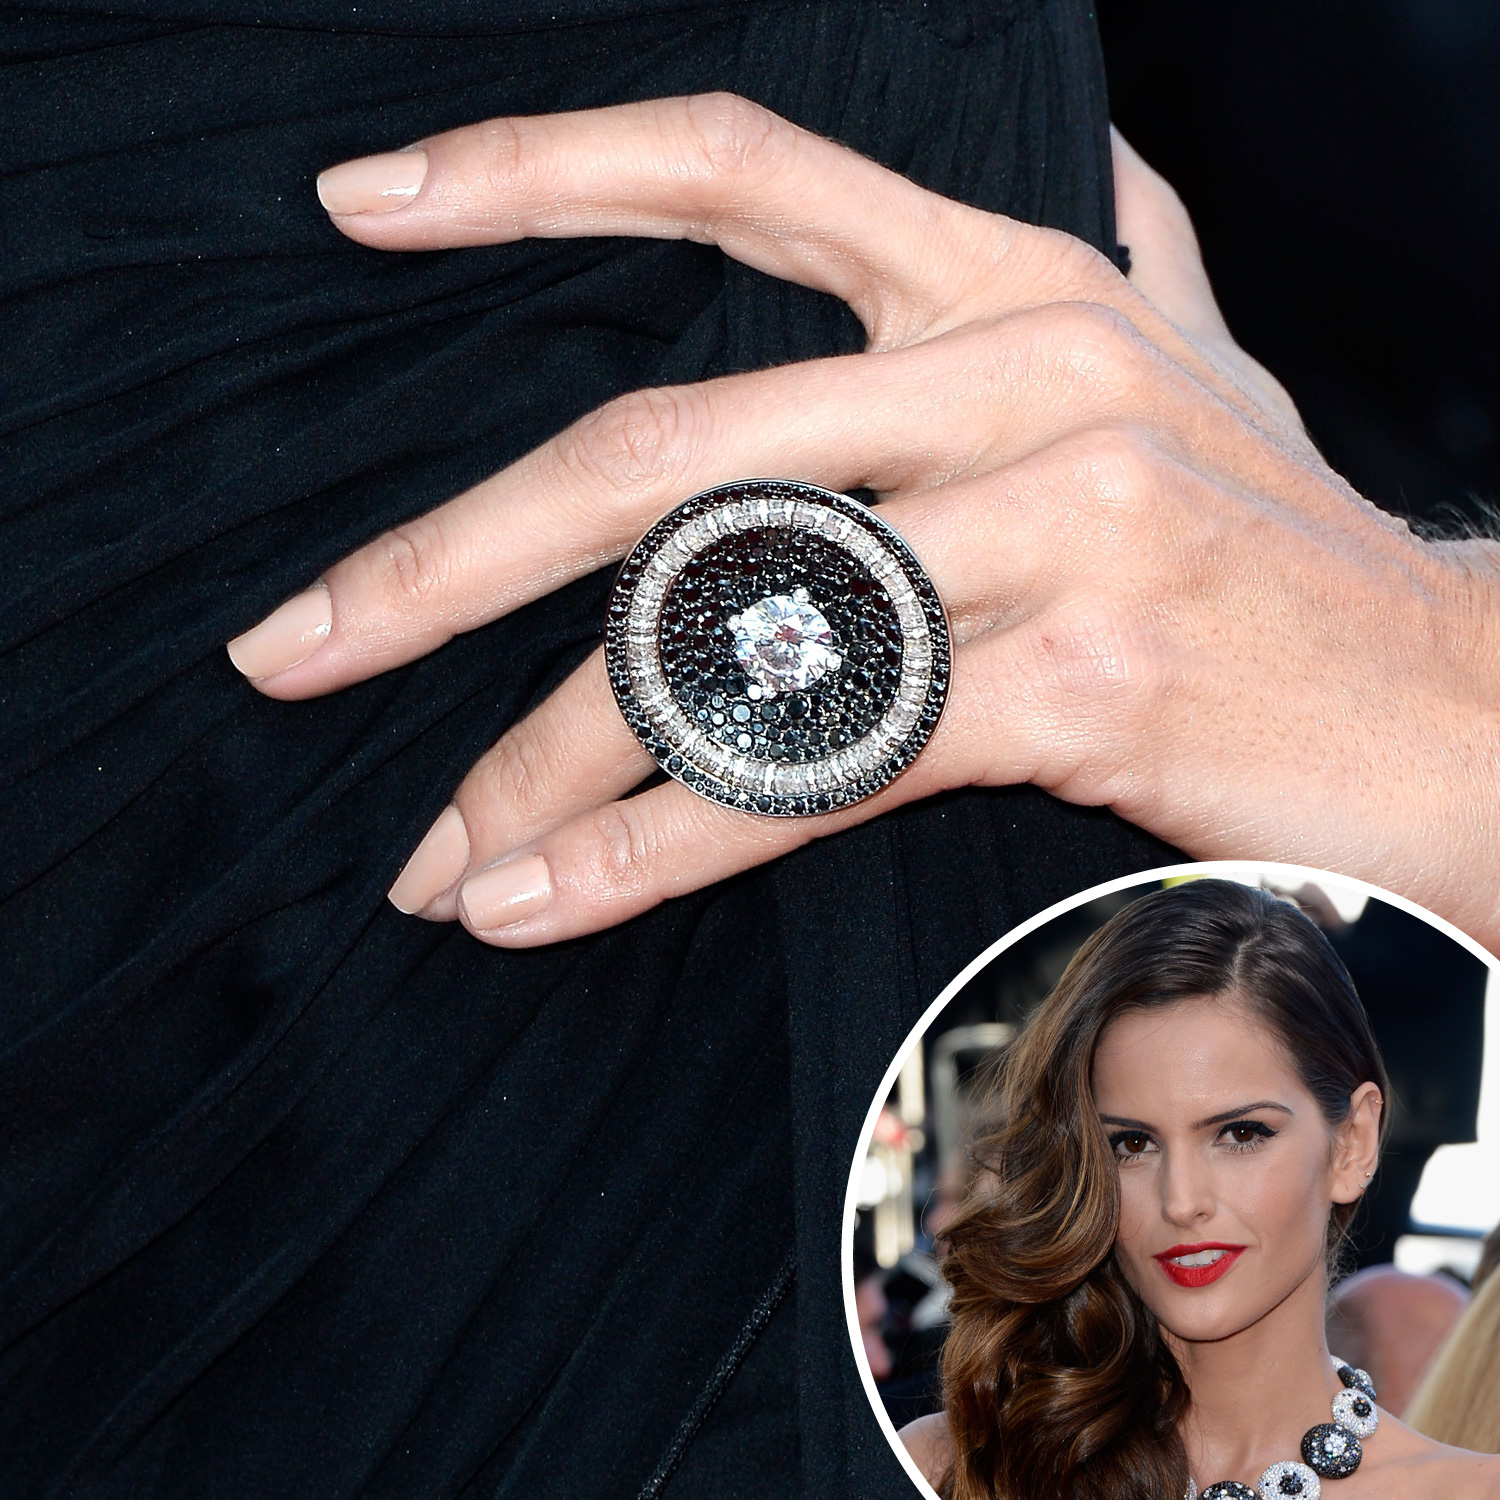 Model Izabel Goulart was spotted at the premiere of The Immigrant with a nude nail polish accented with a cocktail ring we also saw on fellow model Alessandra Ambrosio.